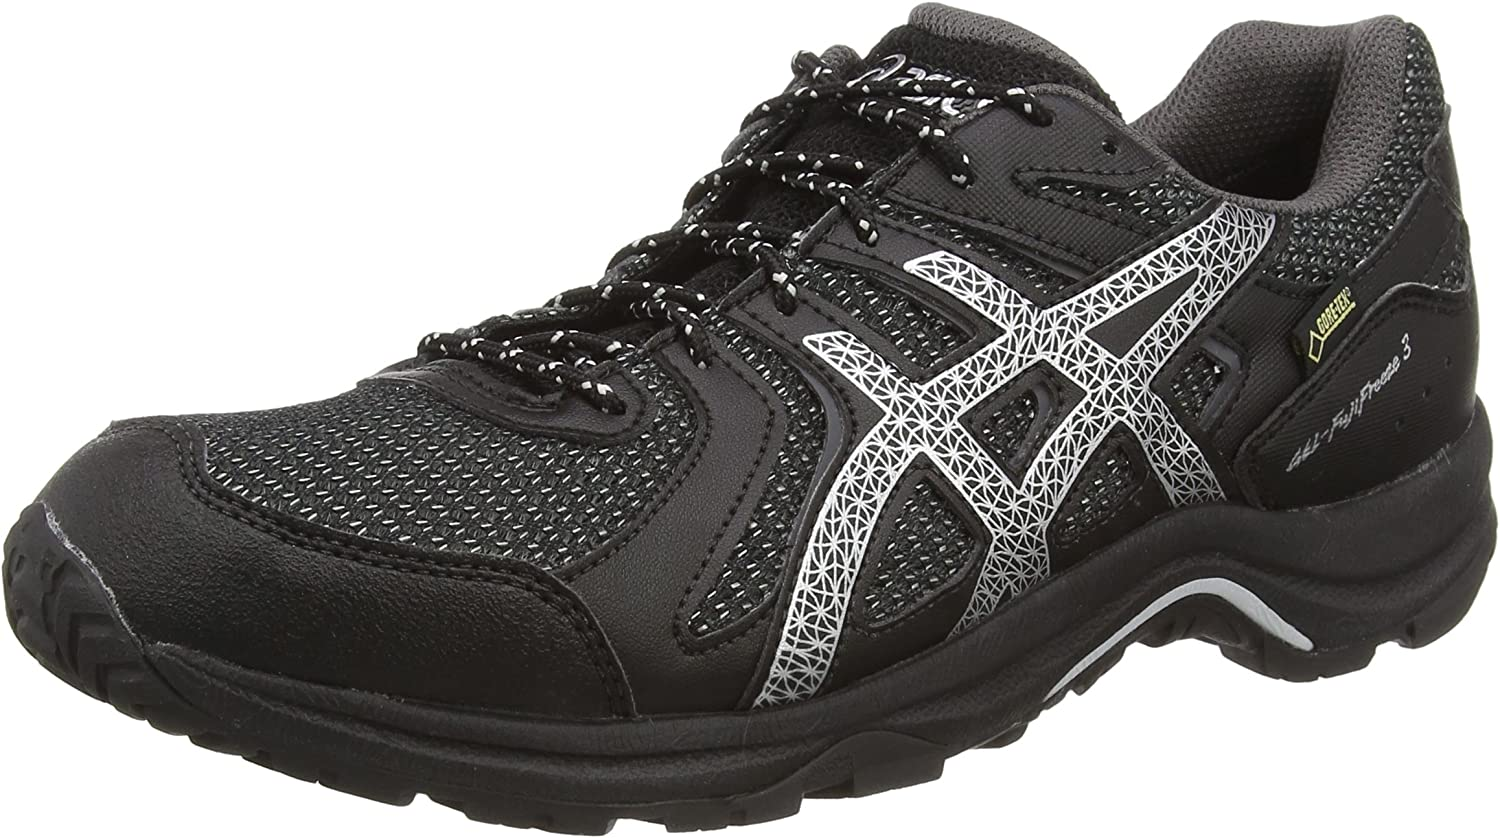 ASICS Gel-Fujifreeze 3 G-Tx, Men's Low Rise Hiking shoes